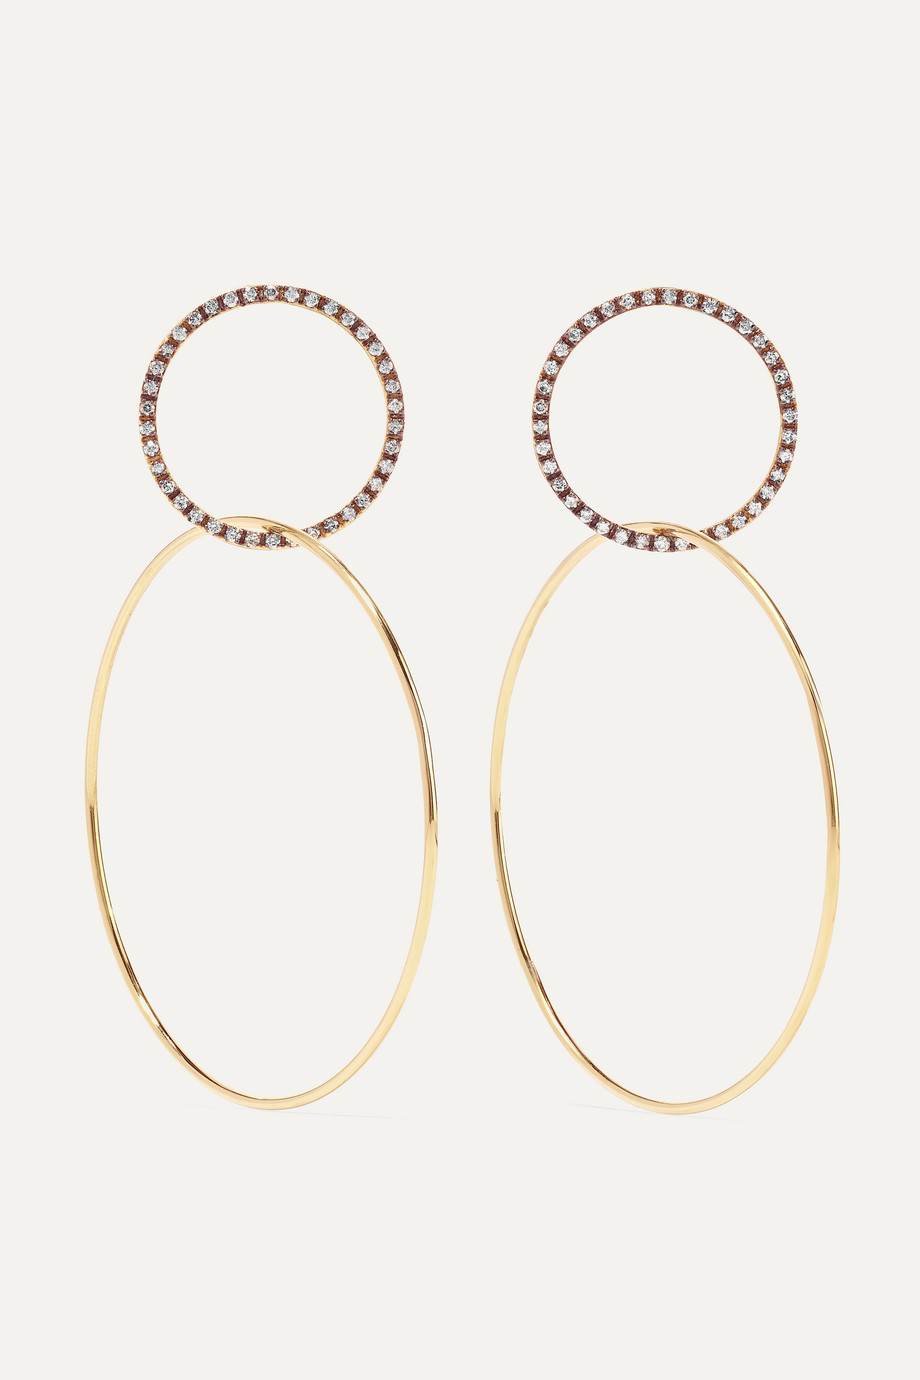 Ileana Makri Double Slim Medium 18-karat gold diamond hoop earrings